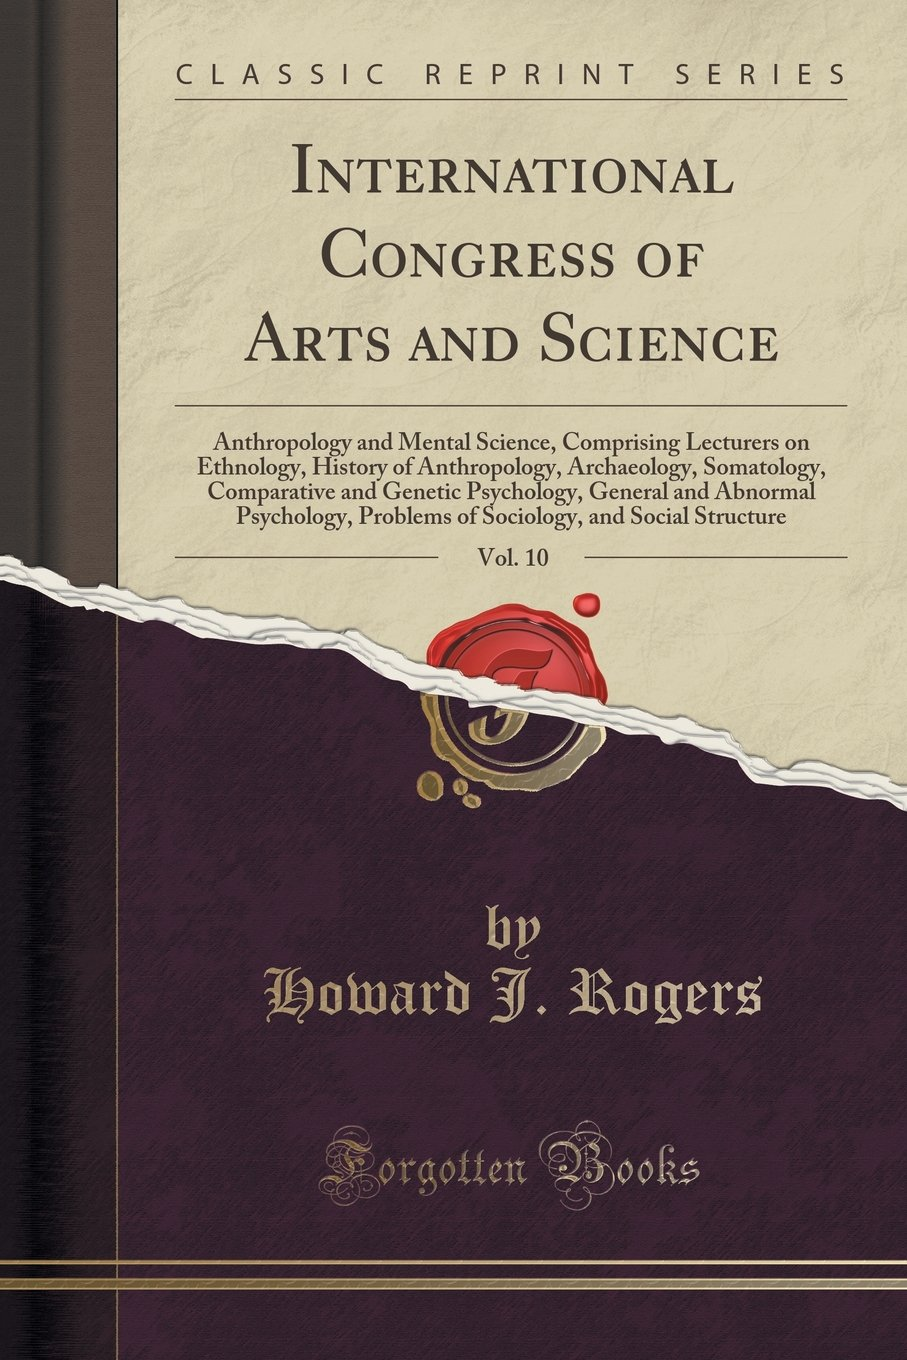 Download International Congress of Arts and Science, Vol. 10: Anthropology and Mental Science, Comprising Lecturers on Ethnology, History of Anthropology, ... and Abnormal Psychology, Problems of Soc pdf